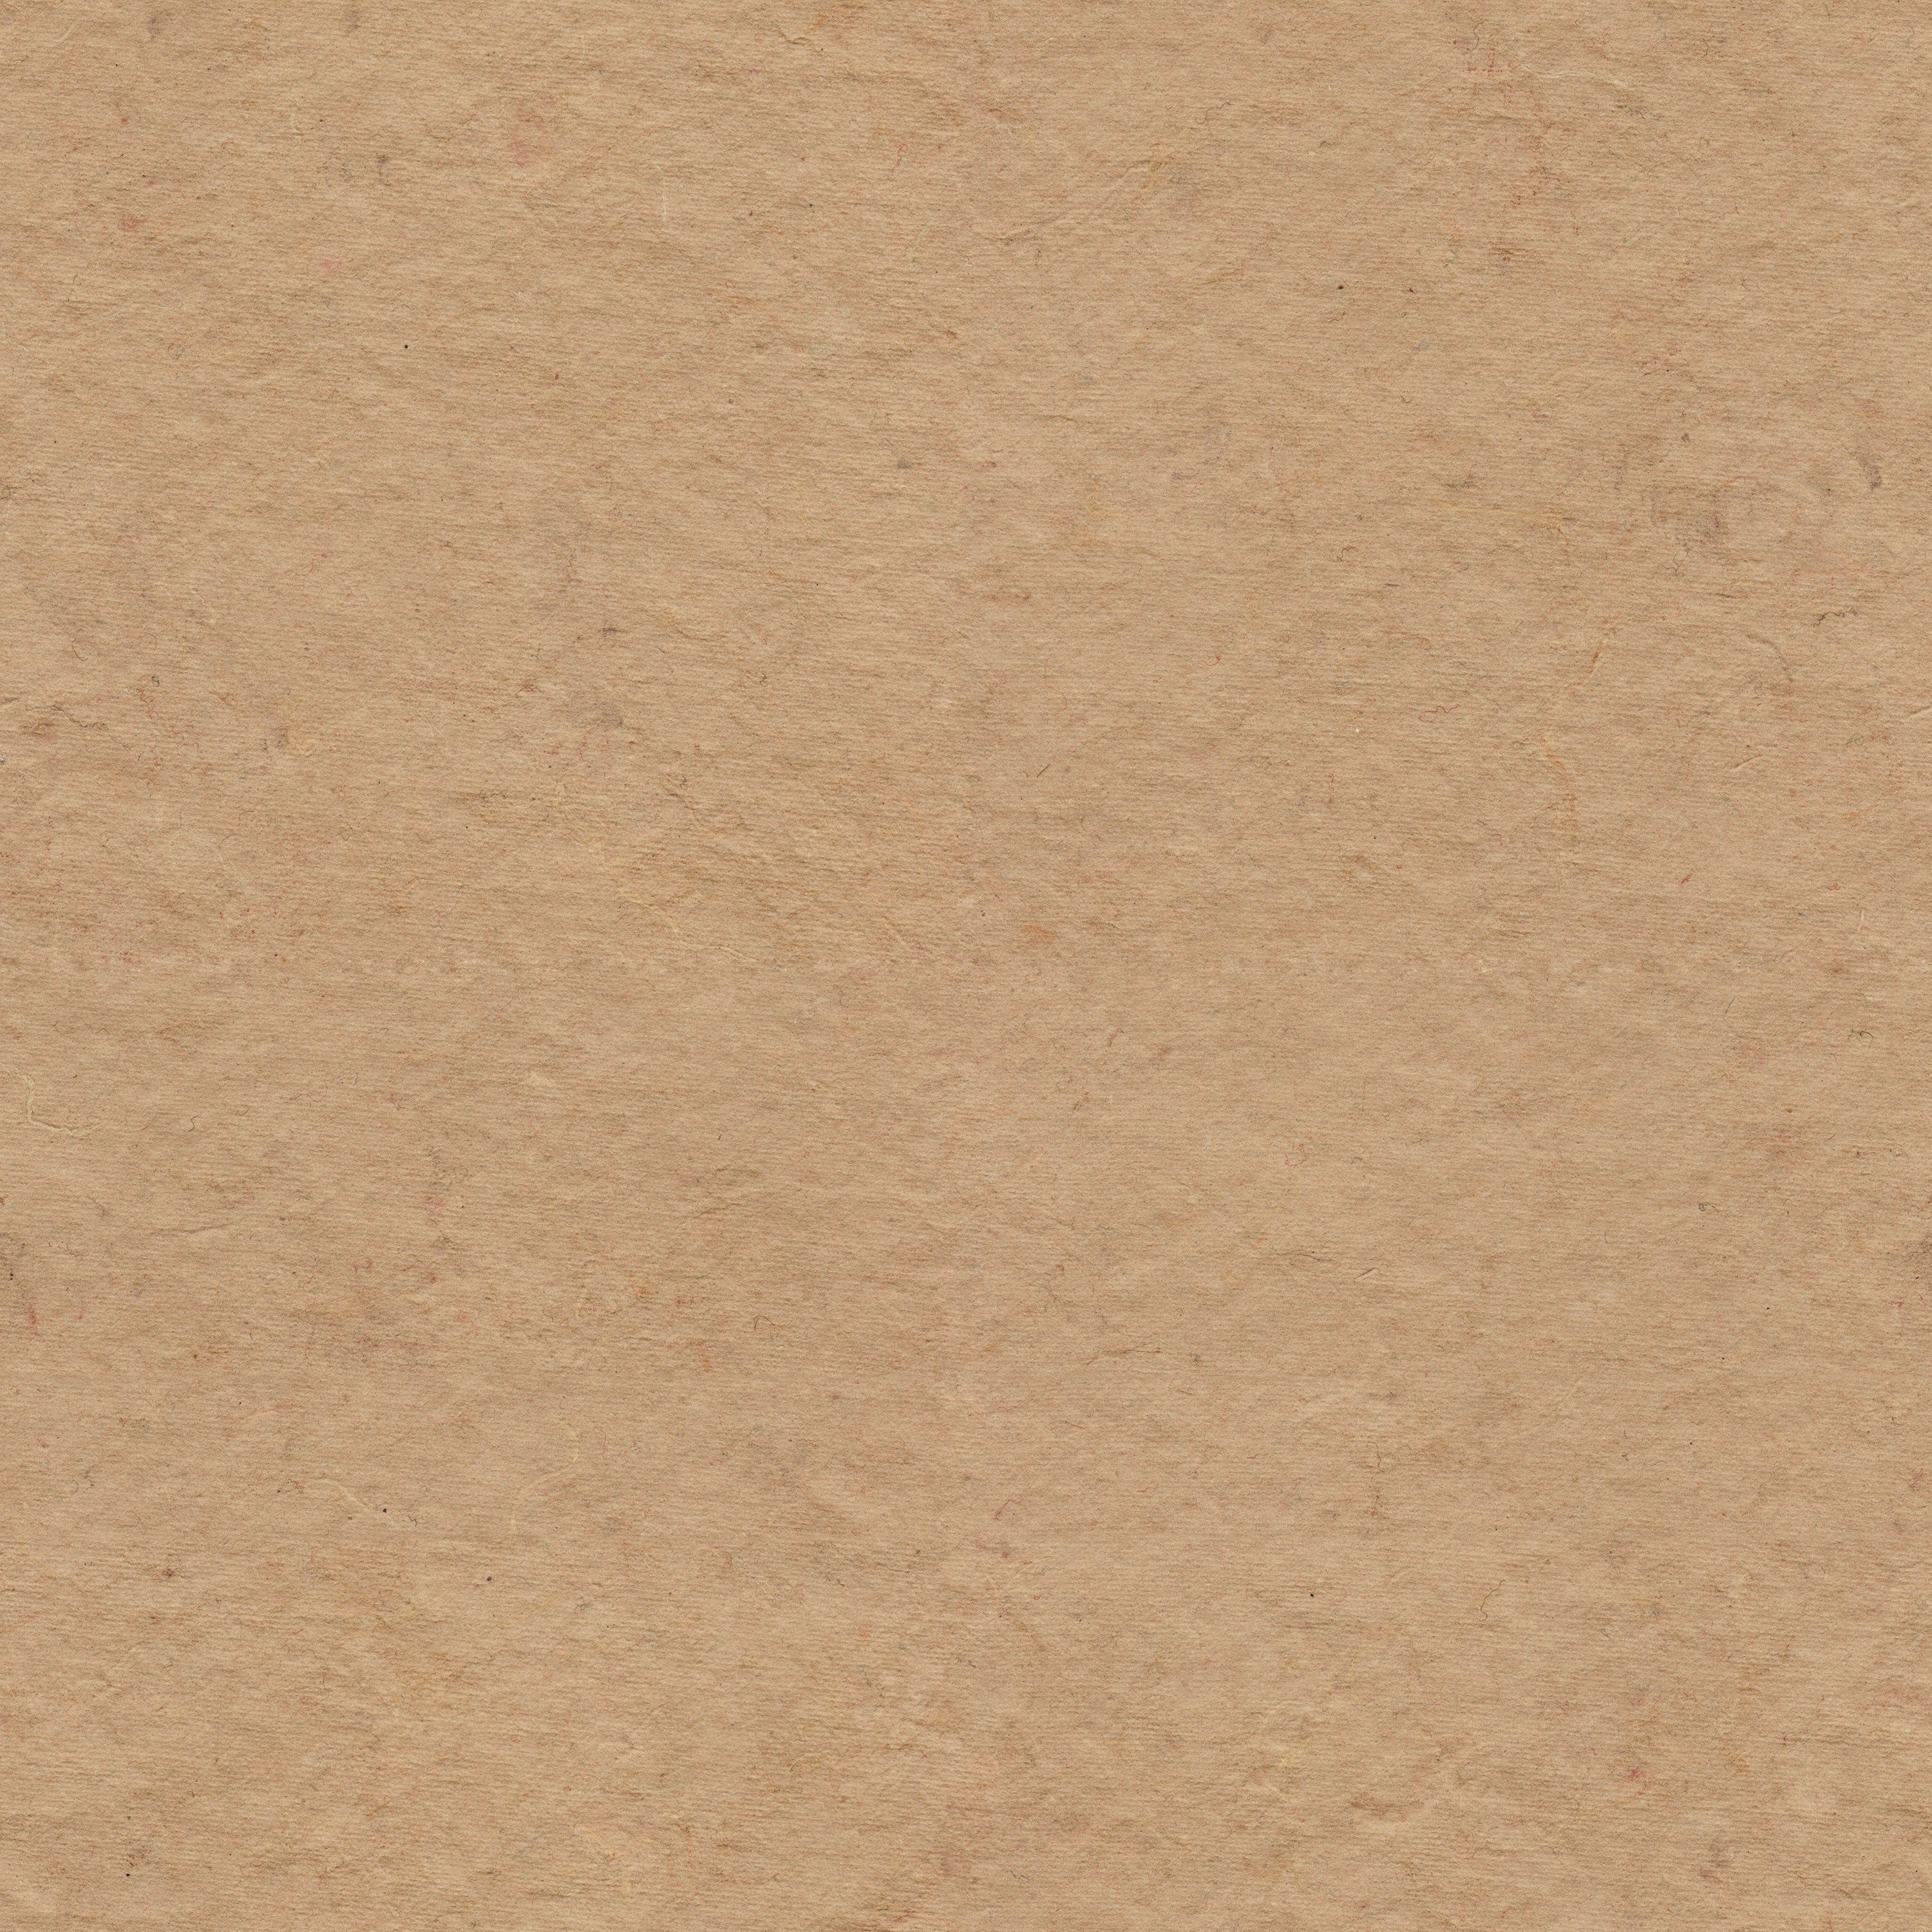 free old brown paper seamless texture